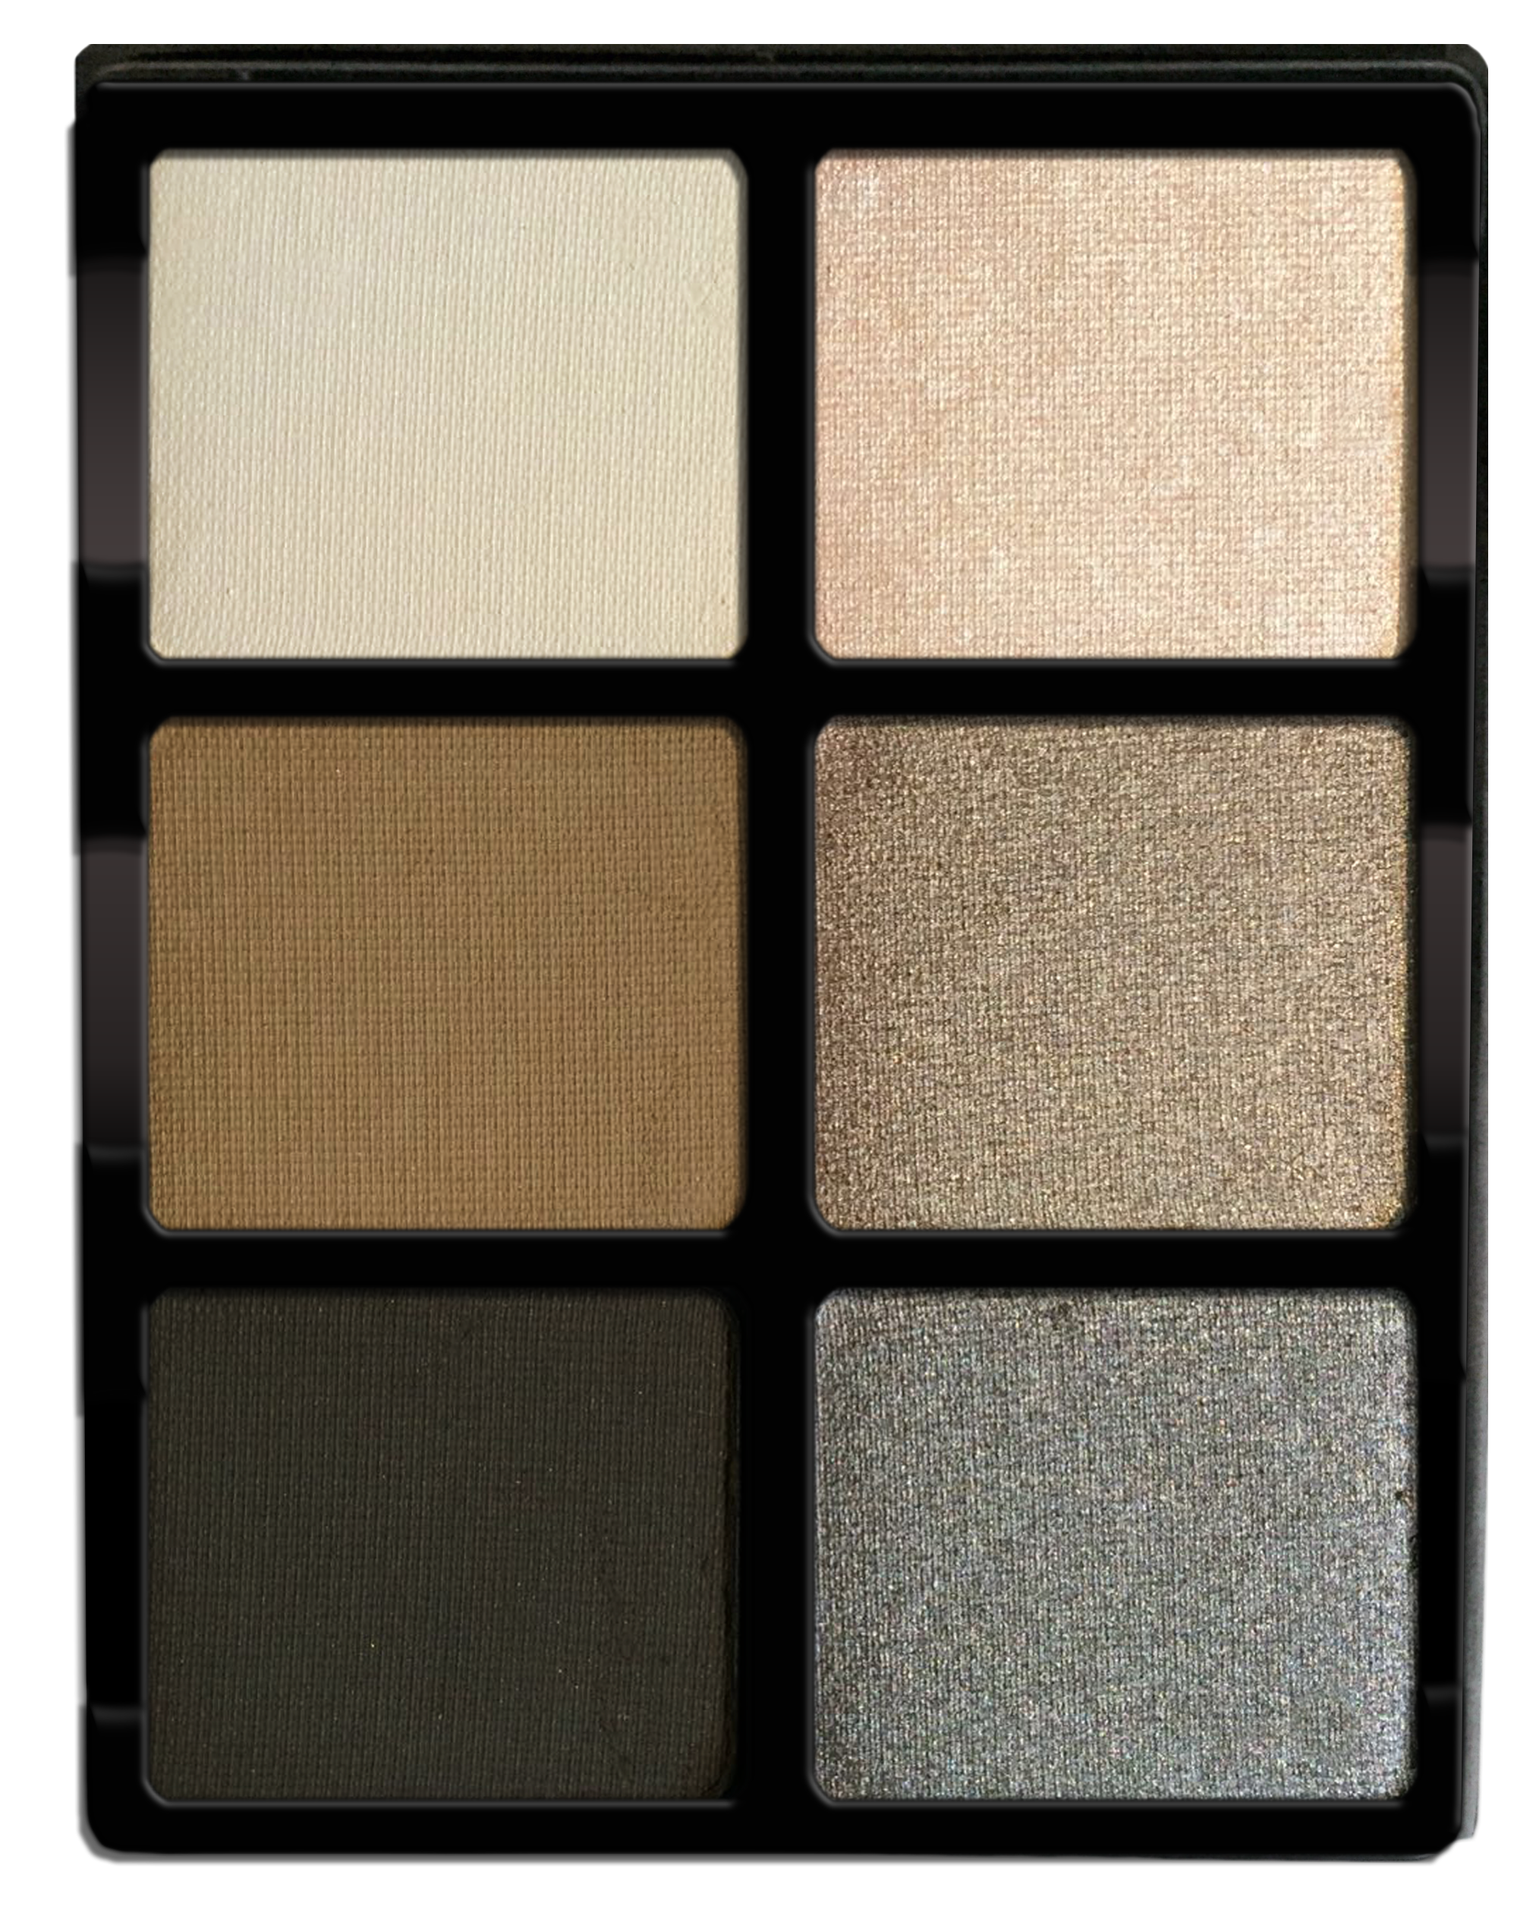 THEORY PALETTE: 01 CASHMERE